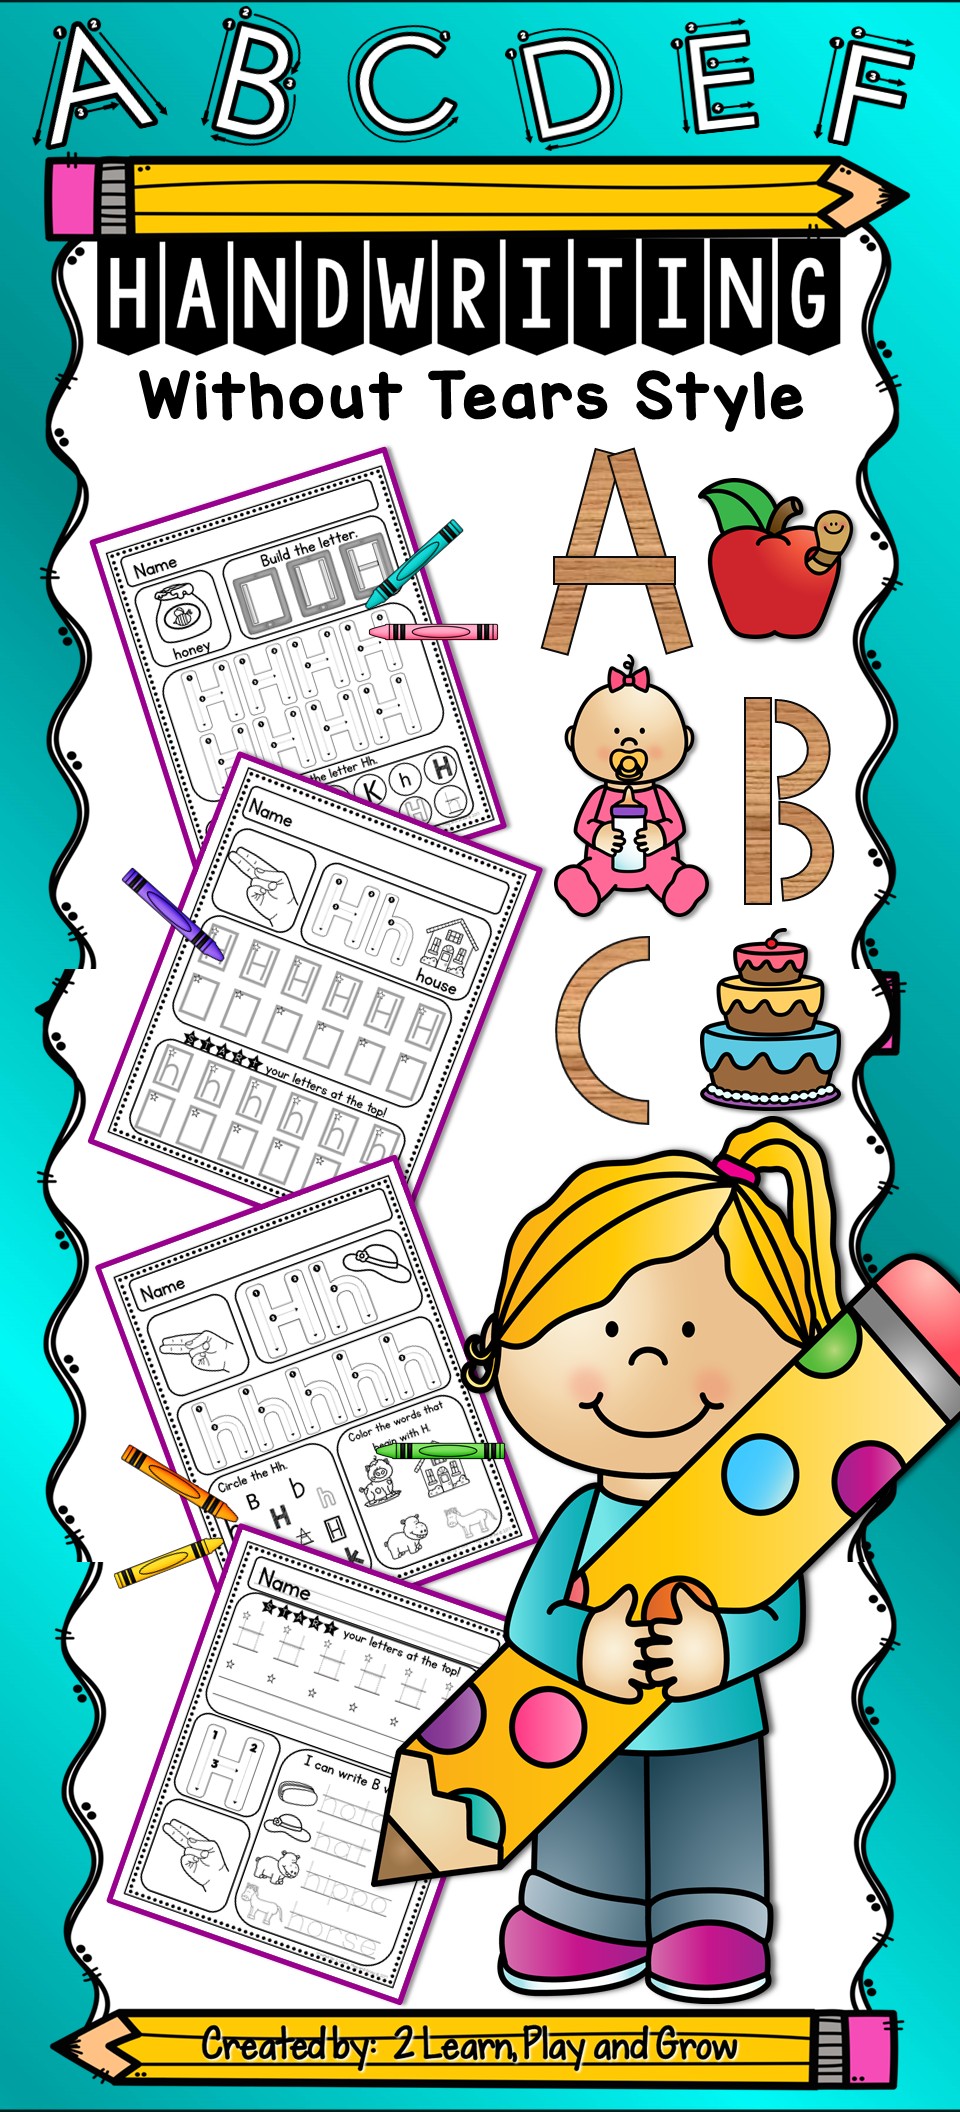 worksheet Handwriting Without Tears Printable Worksheets handwriting without tears style worksheets differentiated for pre k to 1st